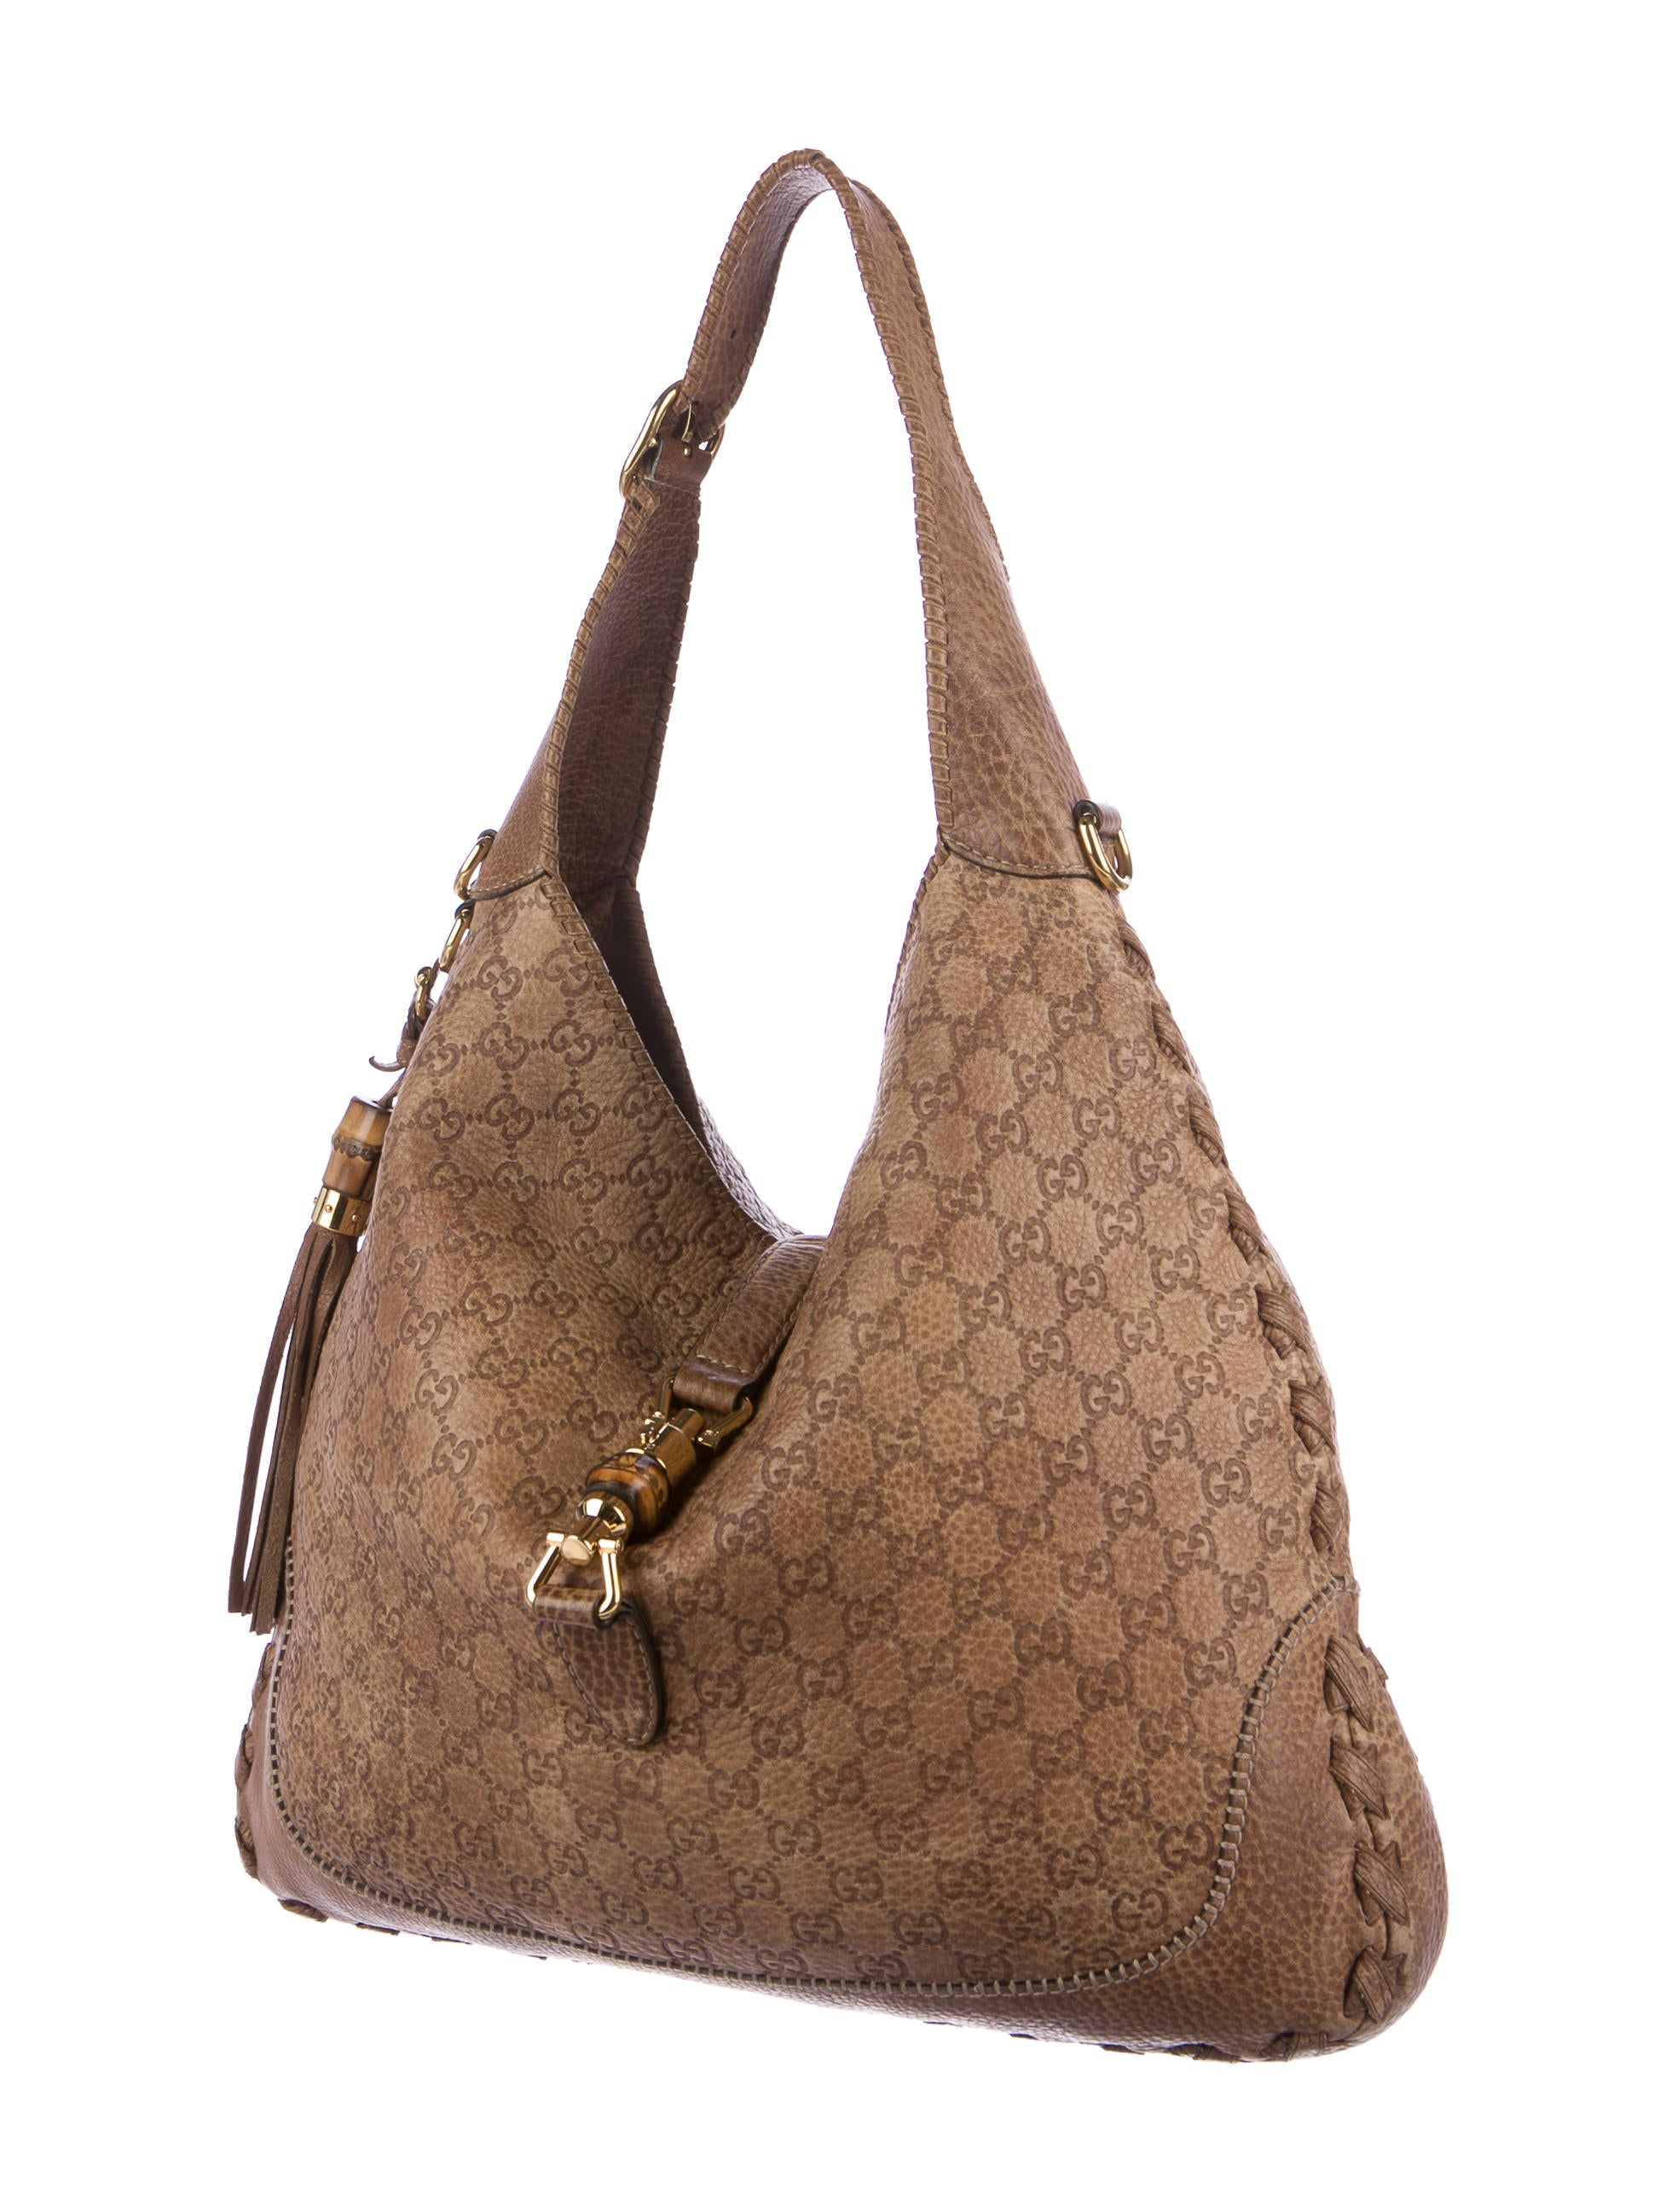 c8c5c0b7851b83 Gucci Guccissima New Jackie Bag - Handbags - GUC160628 | The RealReal